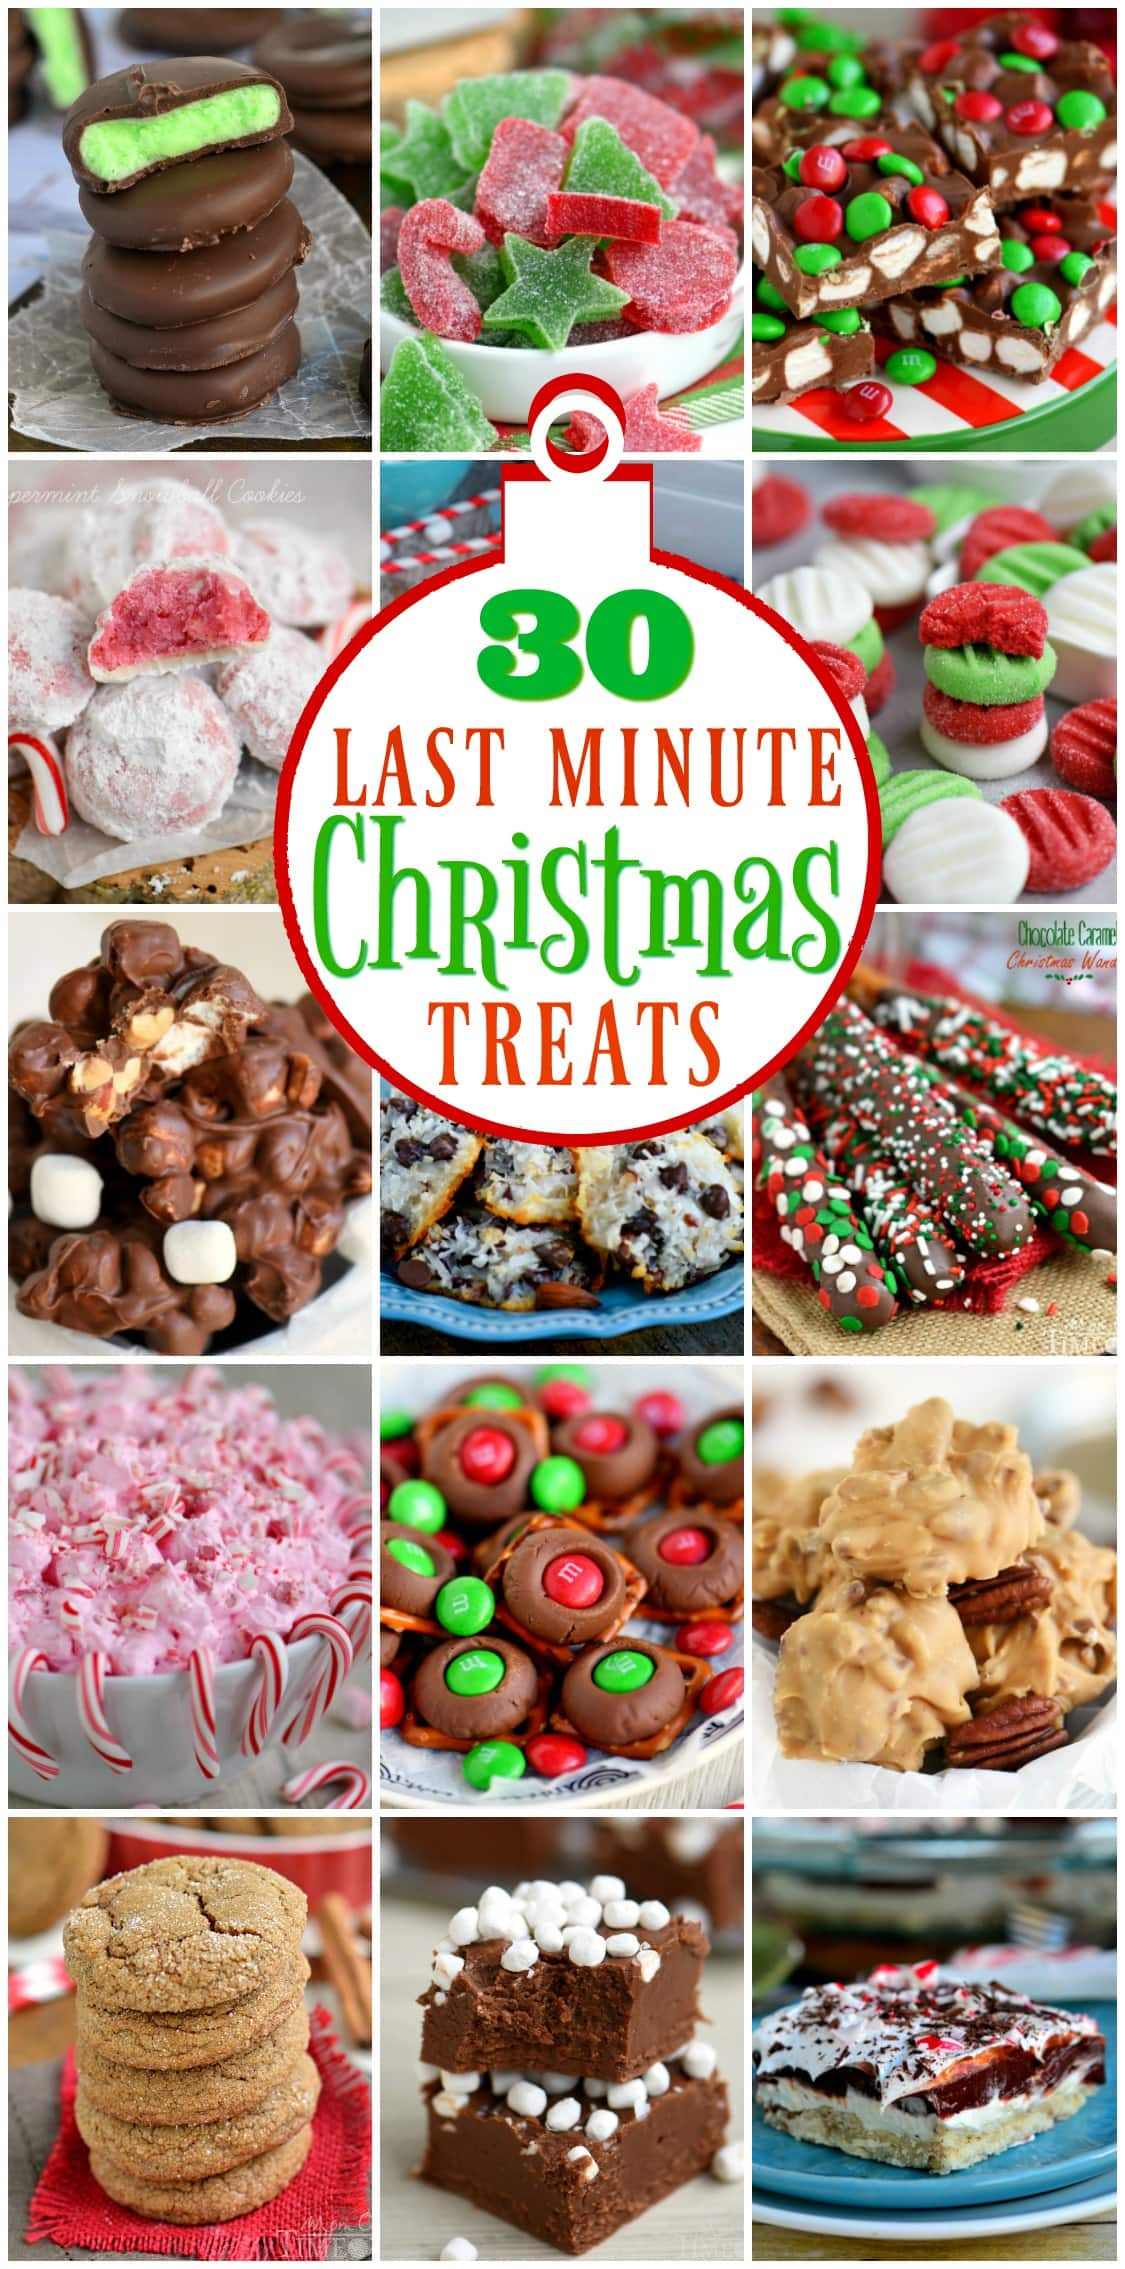 last minute christmas treats collage